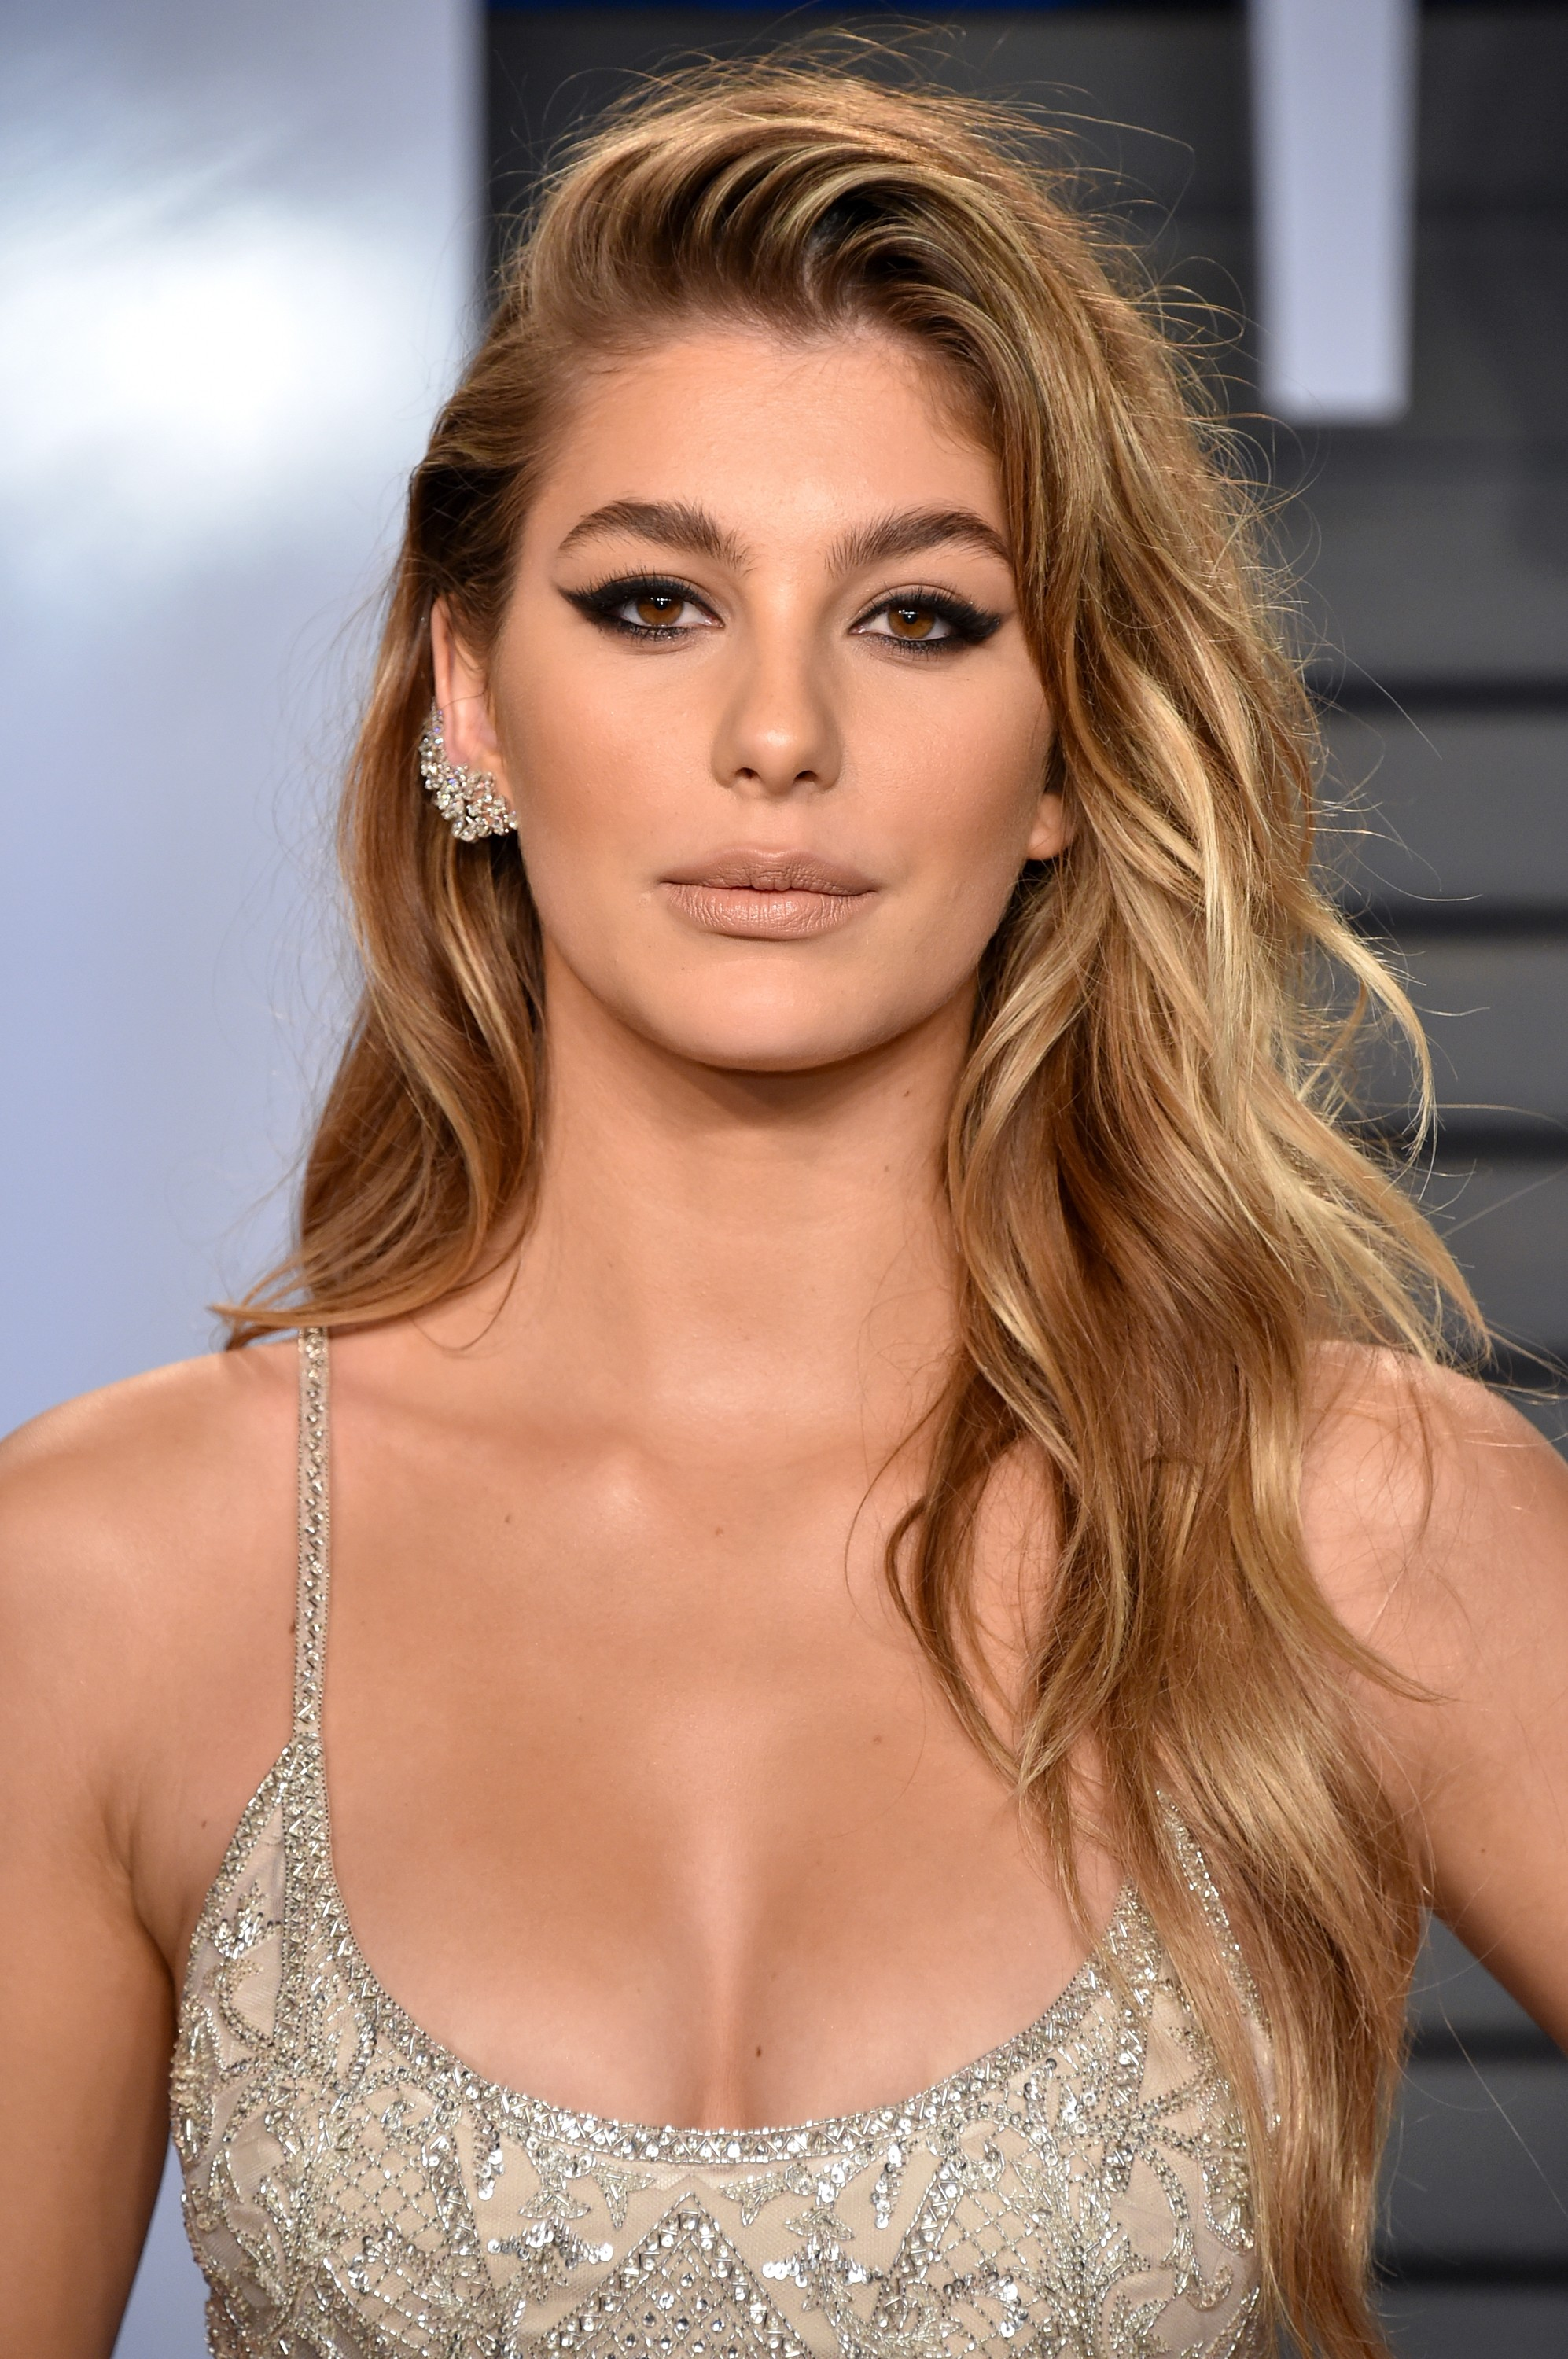 Camila Morrone at 2018 Vanity Fair Oscar Party Pictures - Sexy Actress Pictures | Hot Actress Pictures - ActressSnaps.com